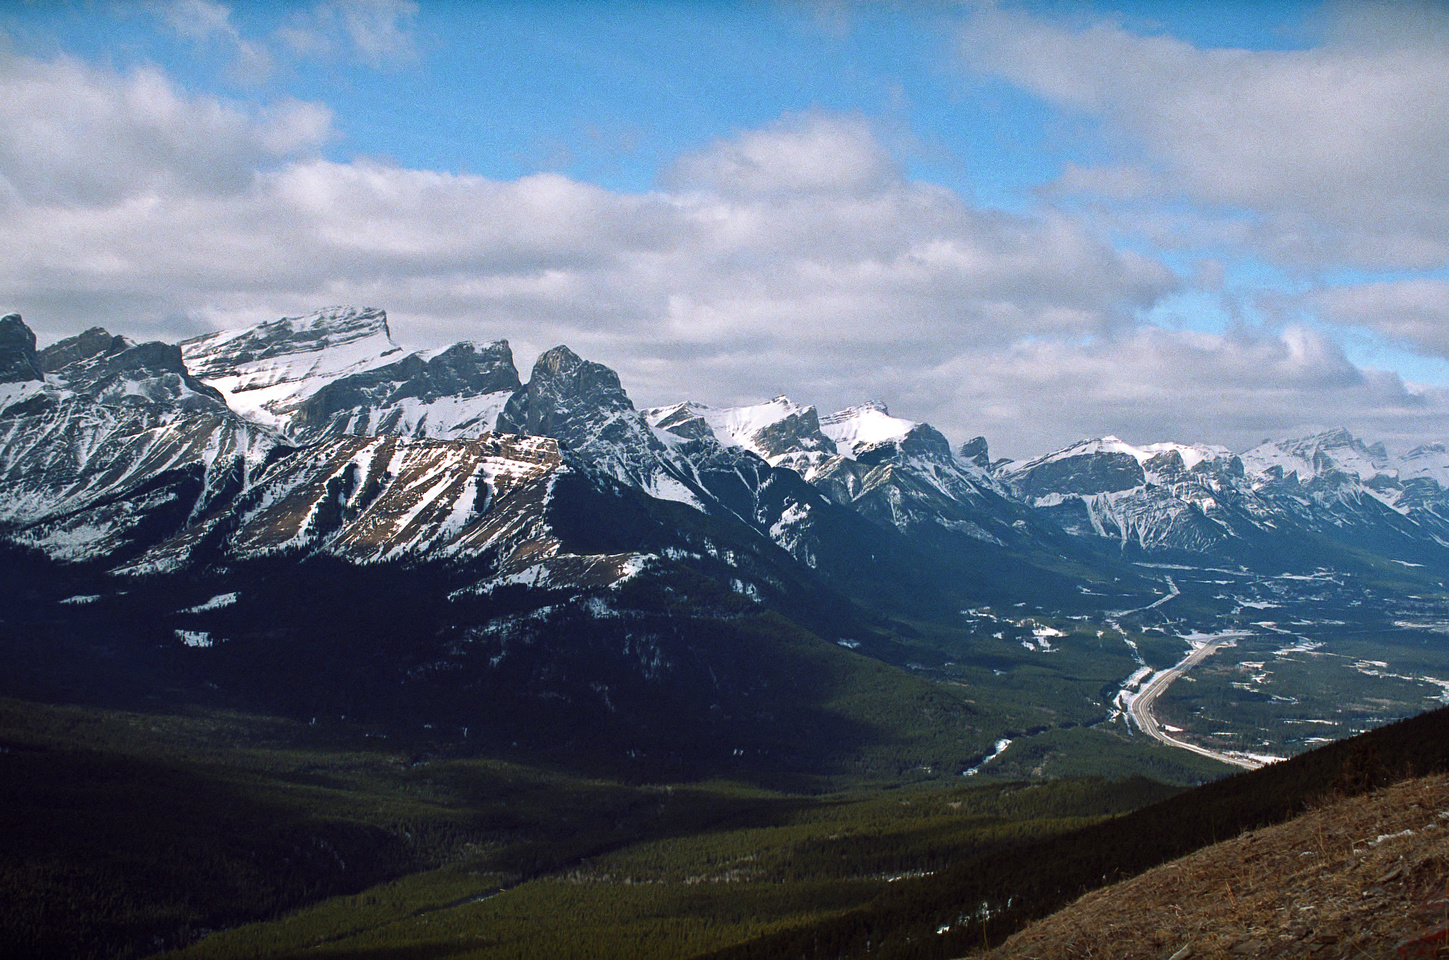 Looking up the Bow Valley. The Orphan, Big, Middle and Little Sister, Lawrence Grassi, Ha Ling, EEOR and Rundle from L to R.